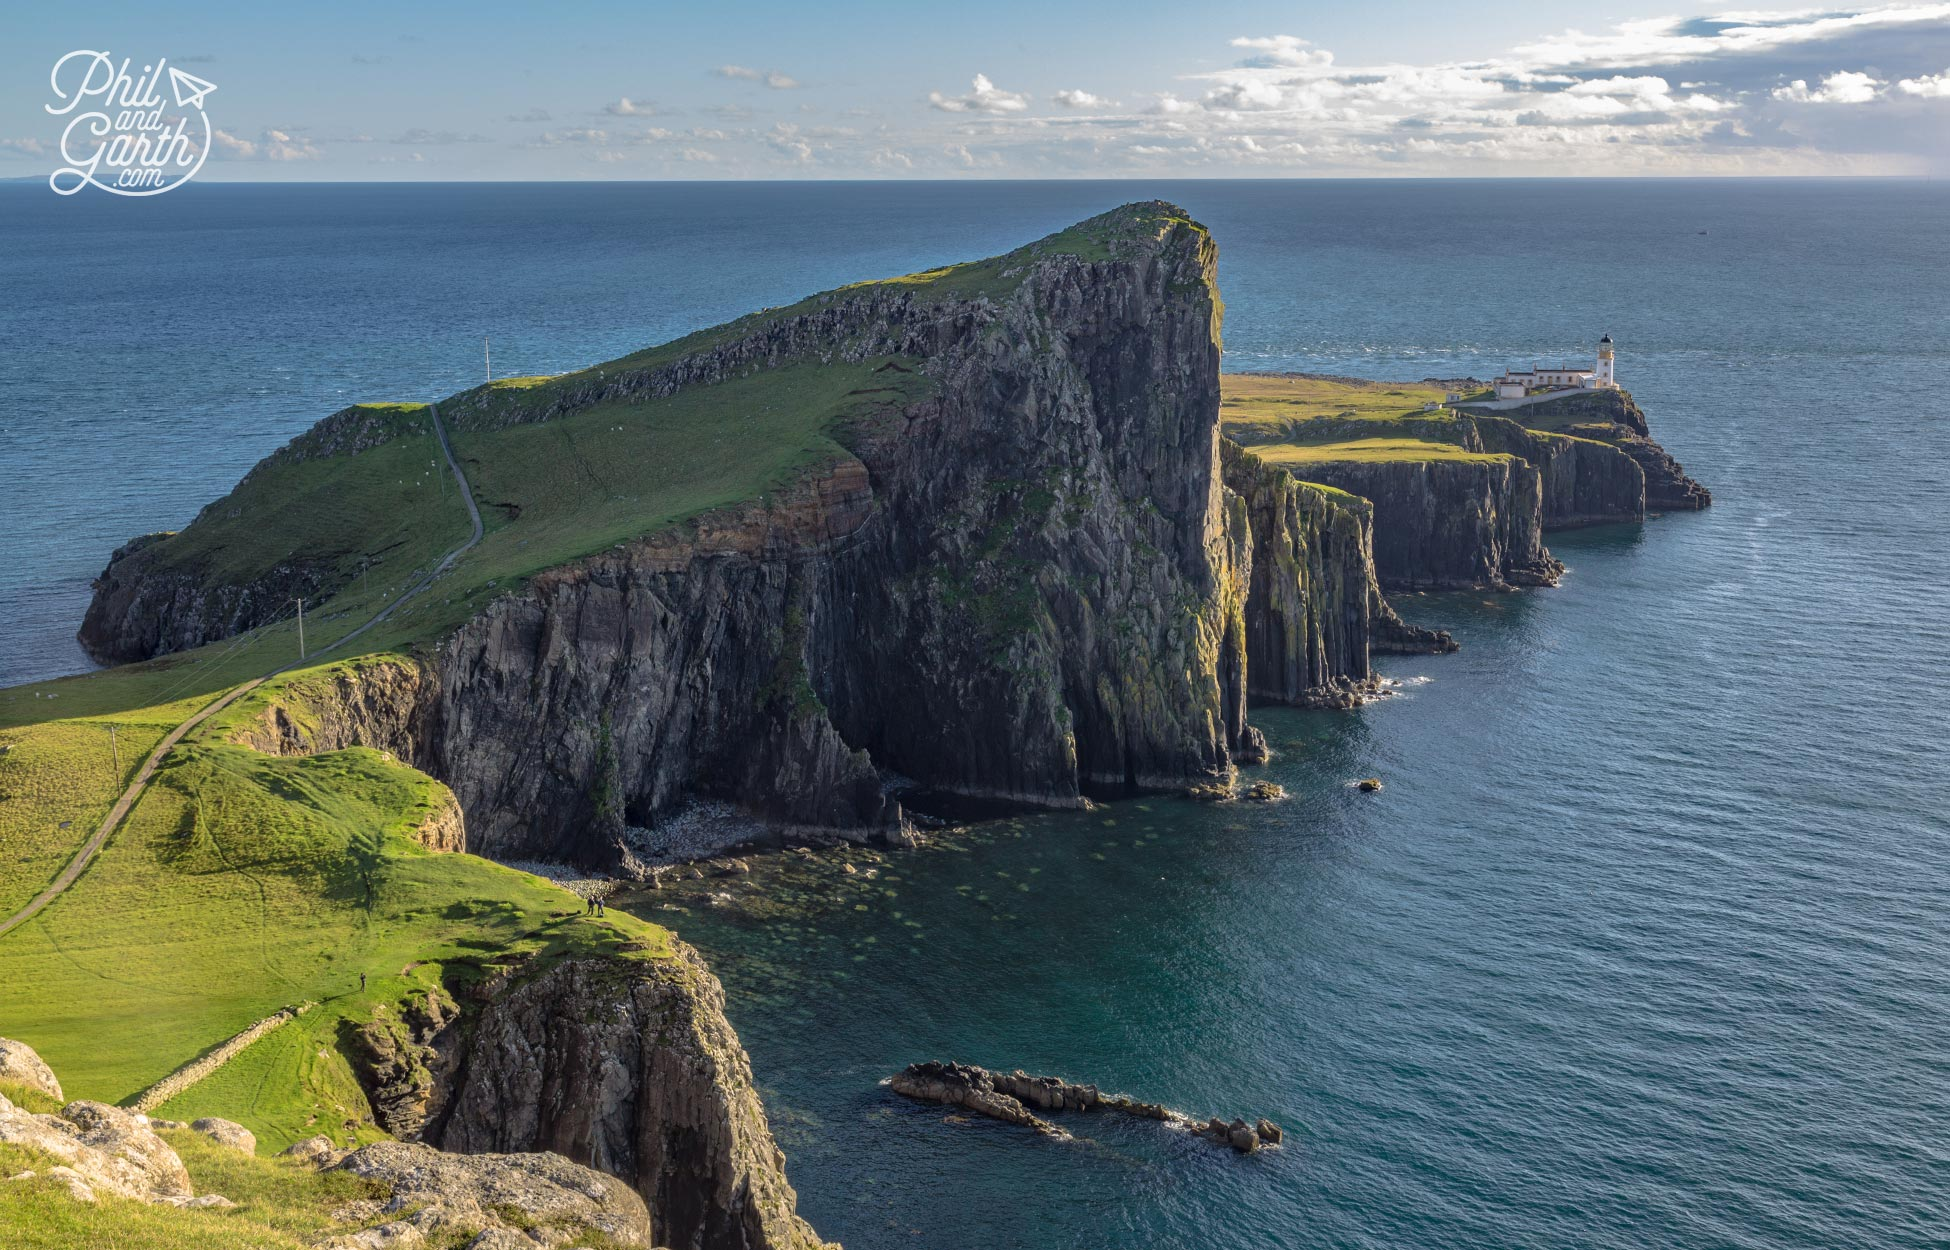 Neist Point on the Isle of Skye